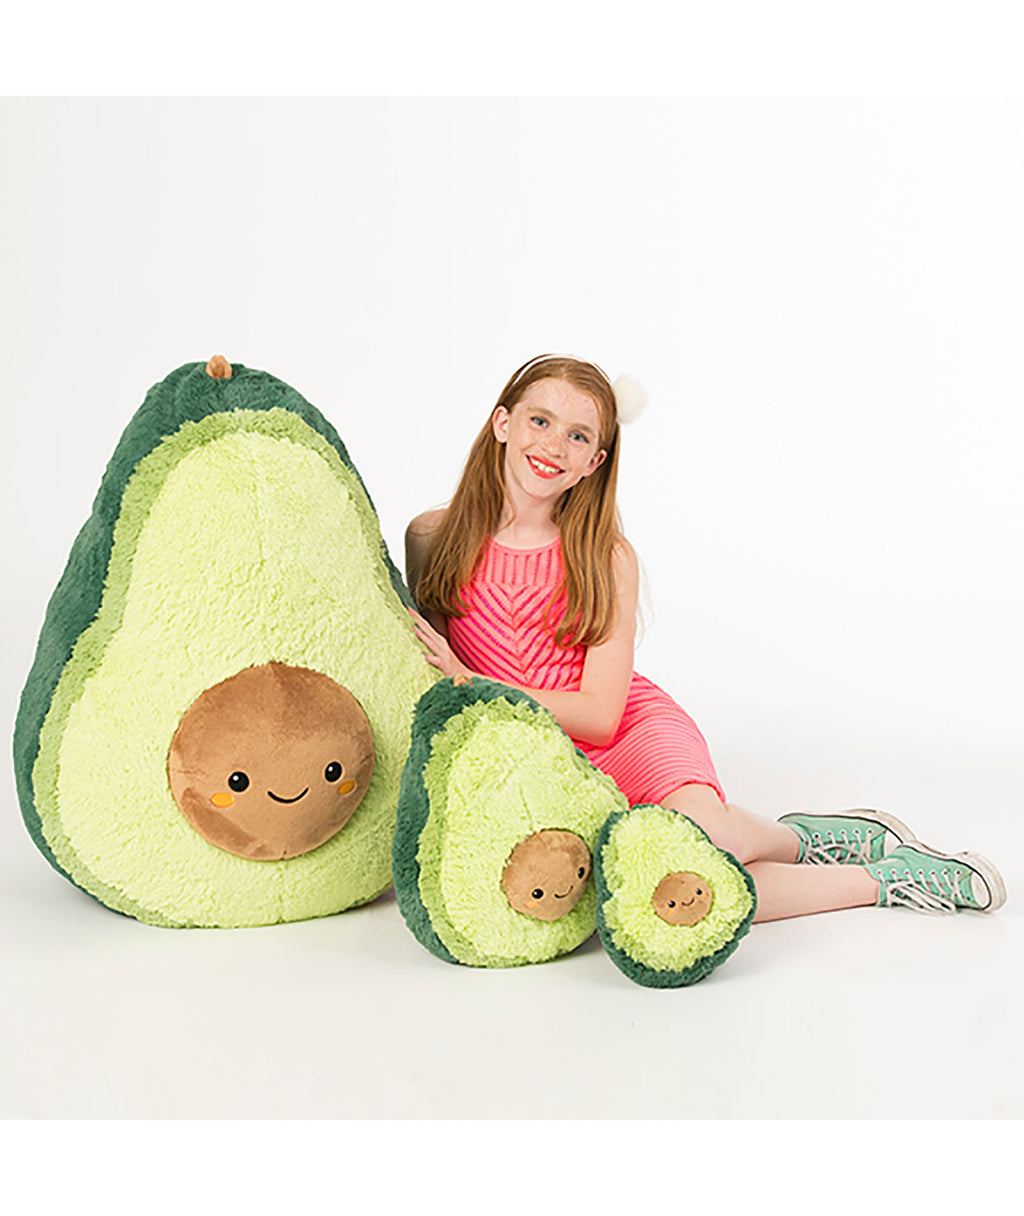 Squishable Massive Avocado